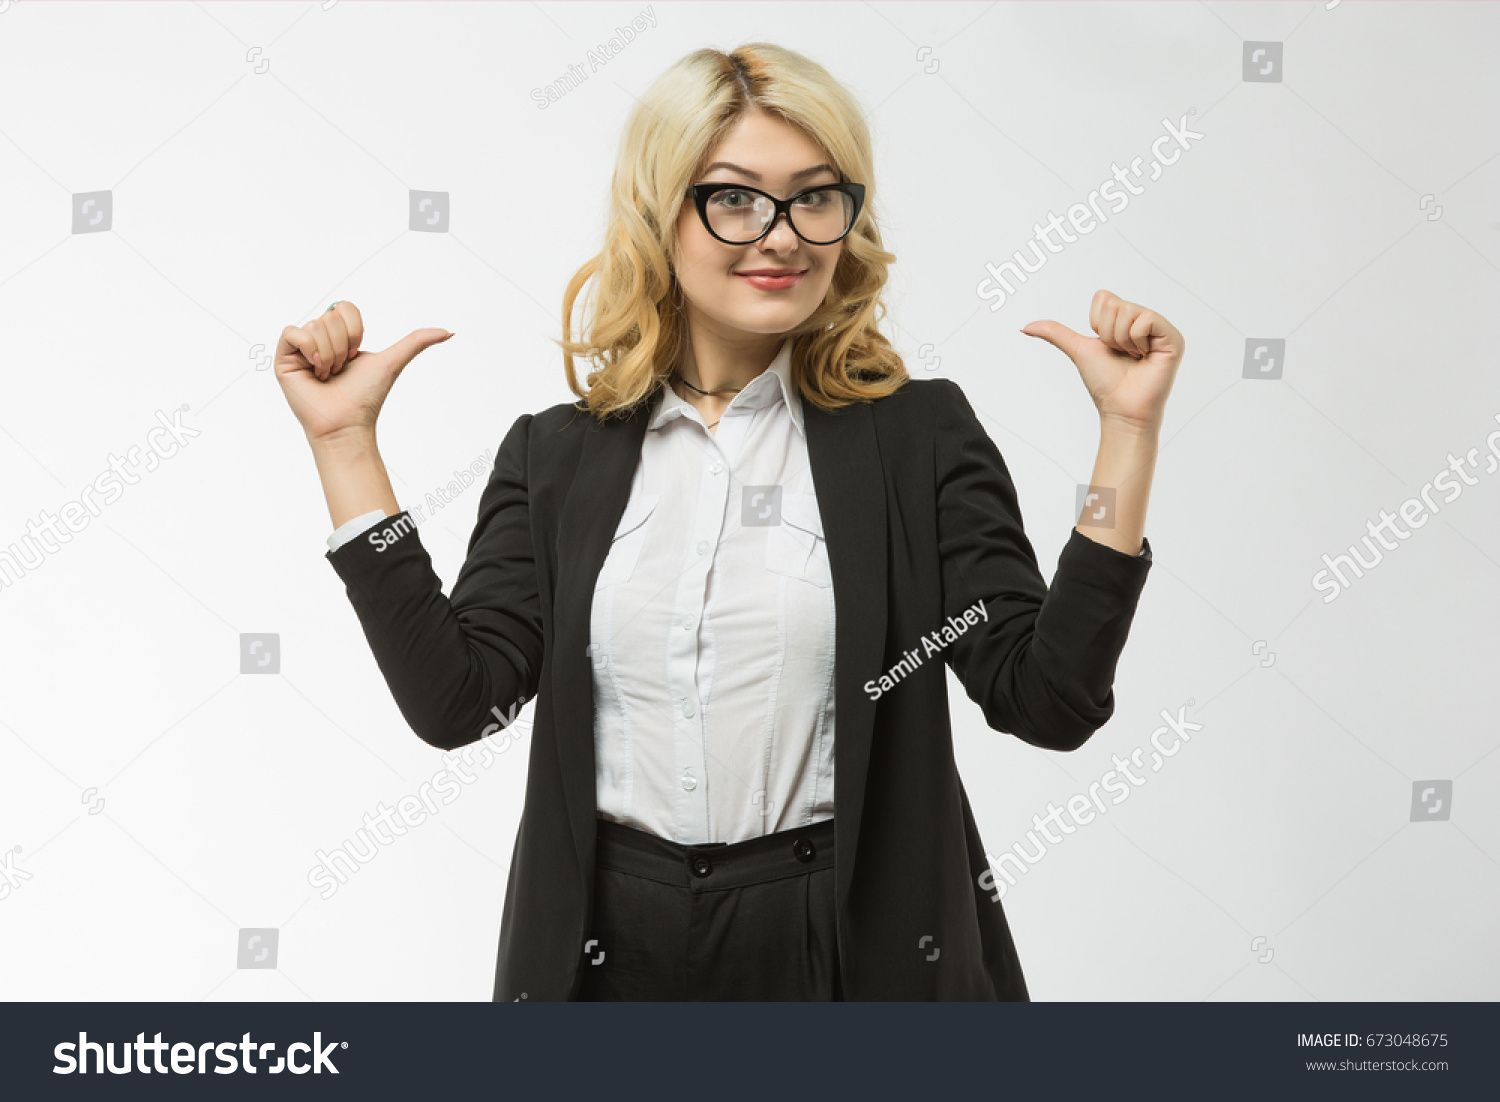 Business Women Successful Business Woman Business Lady Work